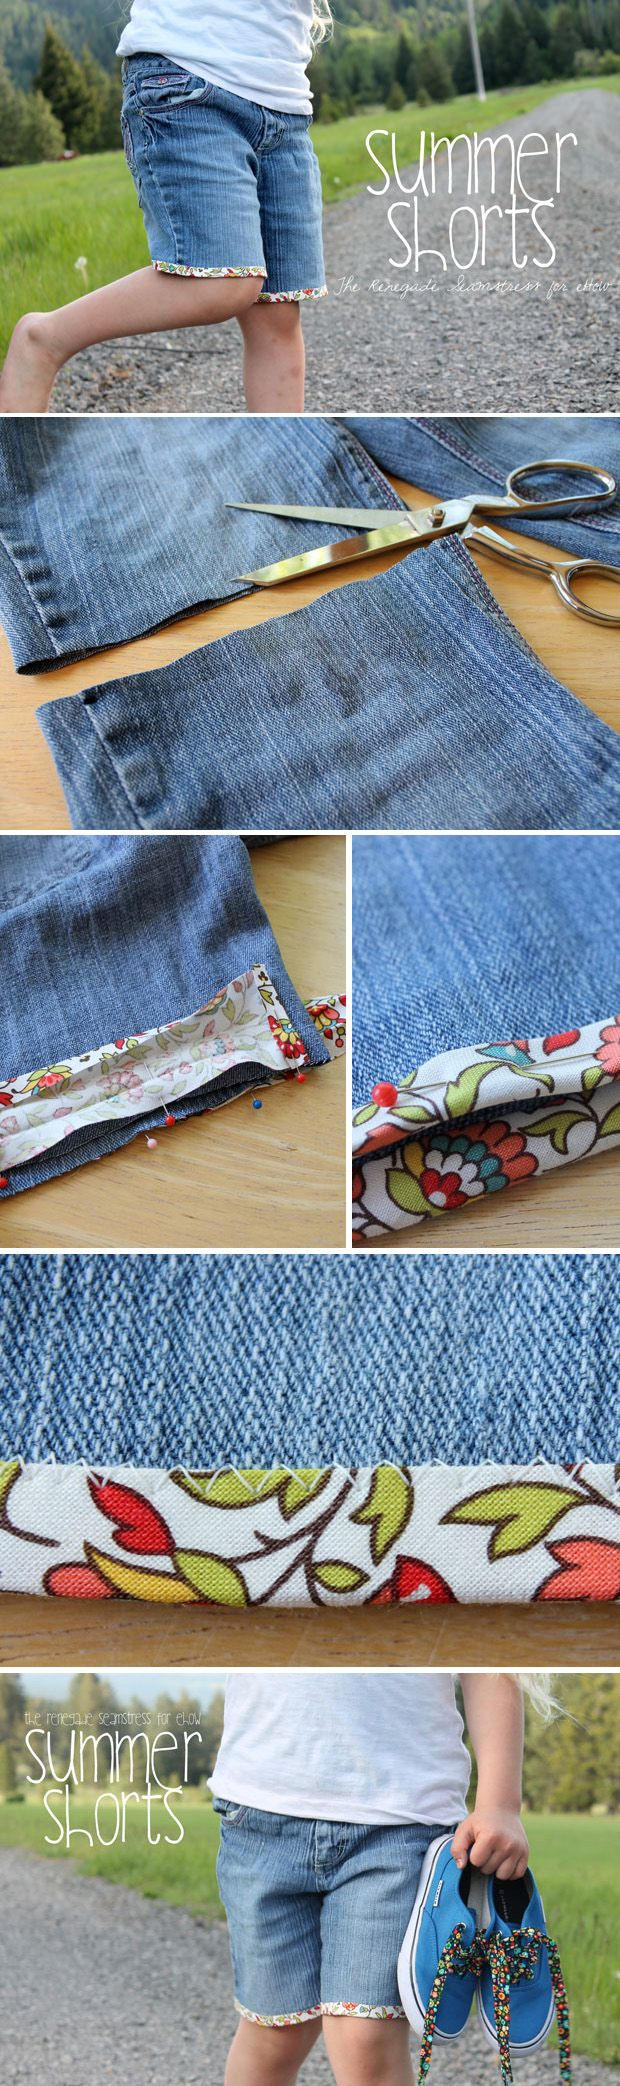 Transform an old pair of jeans into adorable summer shorts using bias tape. Instructions on the site. I could do this to make some of my long pants capris